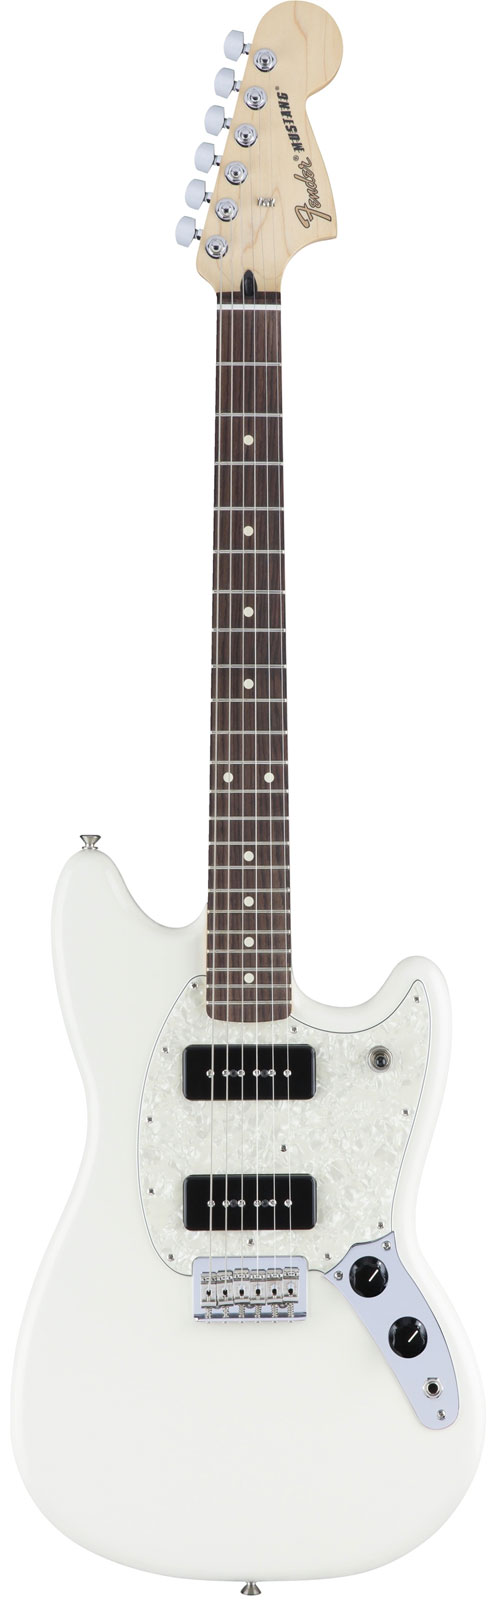 FENDER MUSTANG 90 RW OLYMPIC WHITE